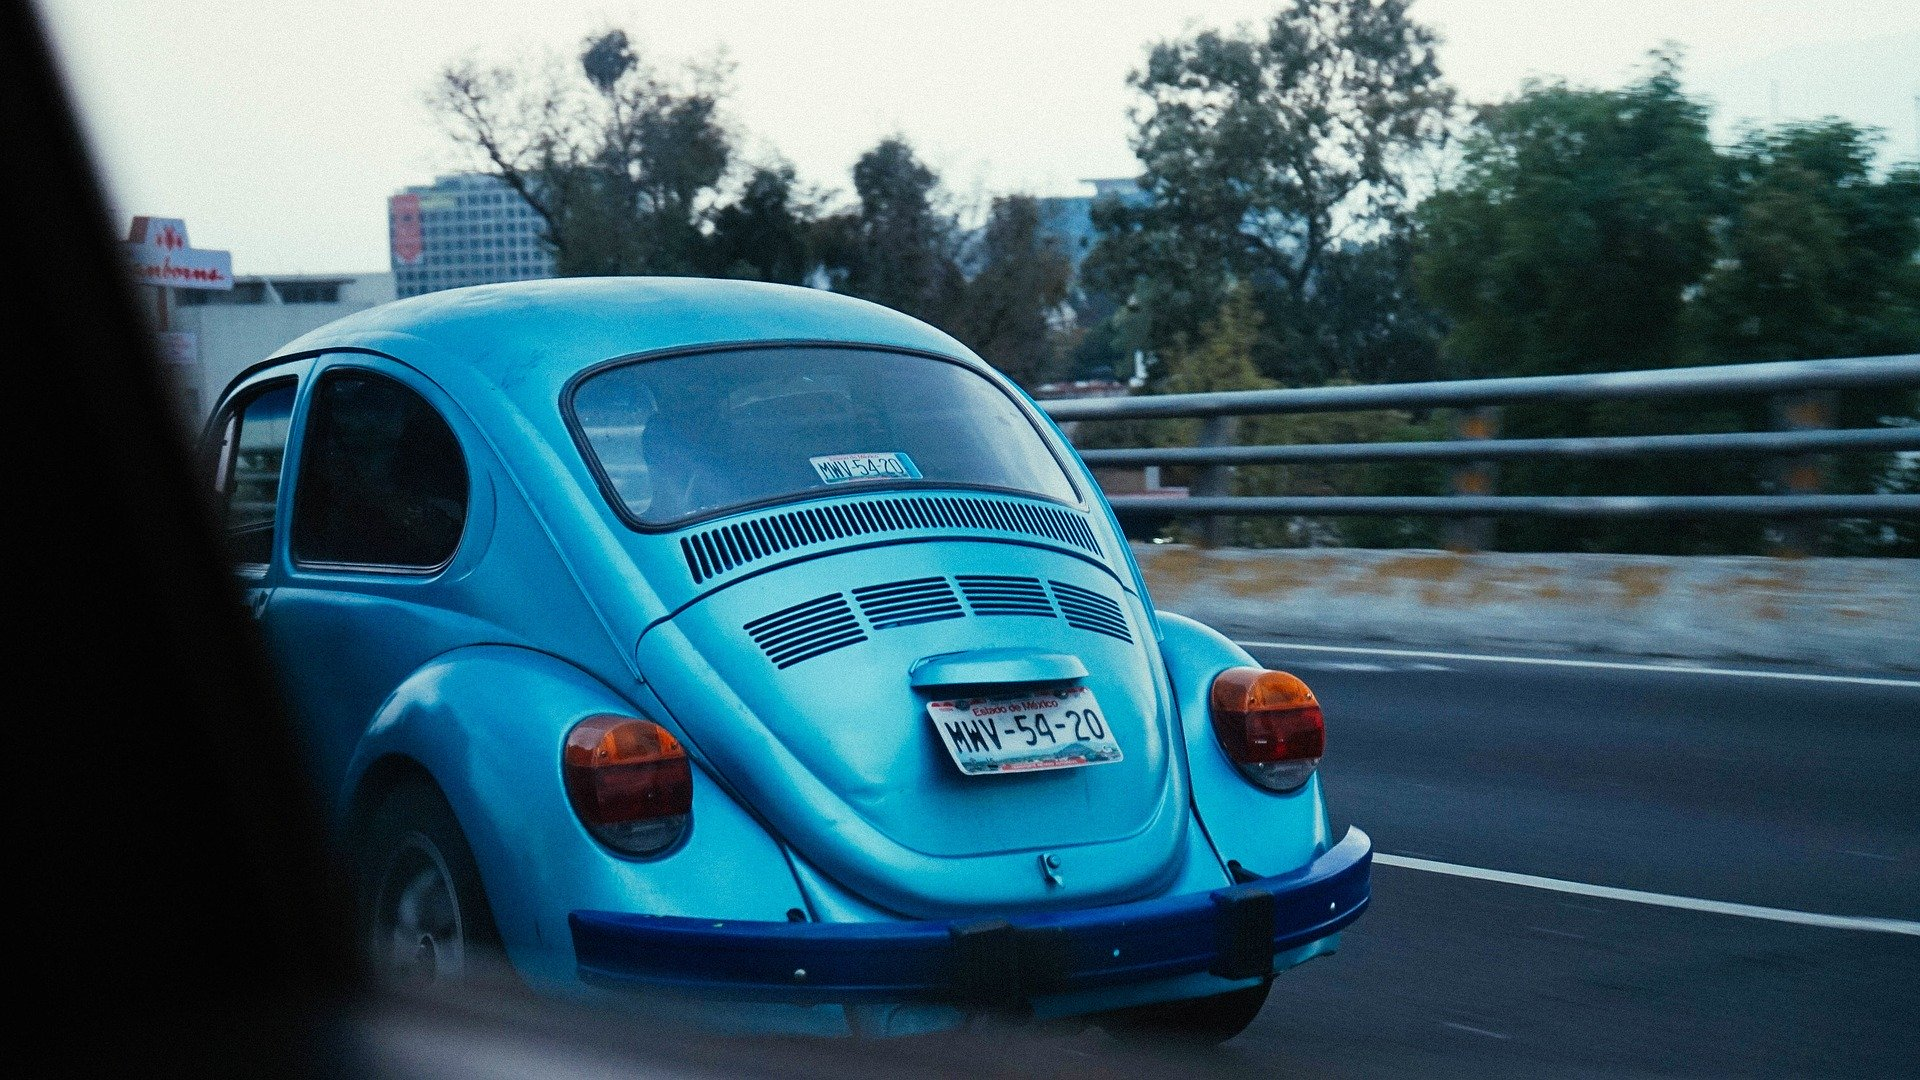 9 Tips for Aspiring Last Edition VW Beetle and Kitchen Appliances Collectors